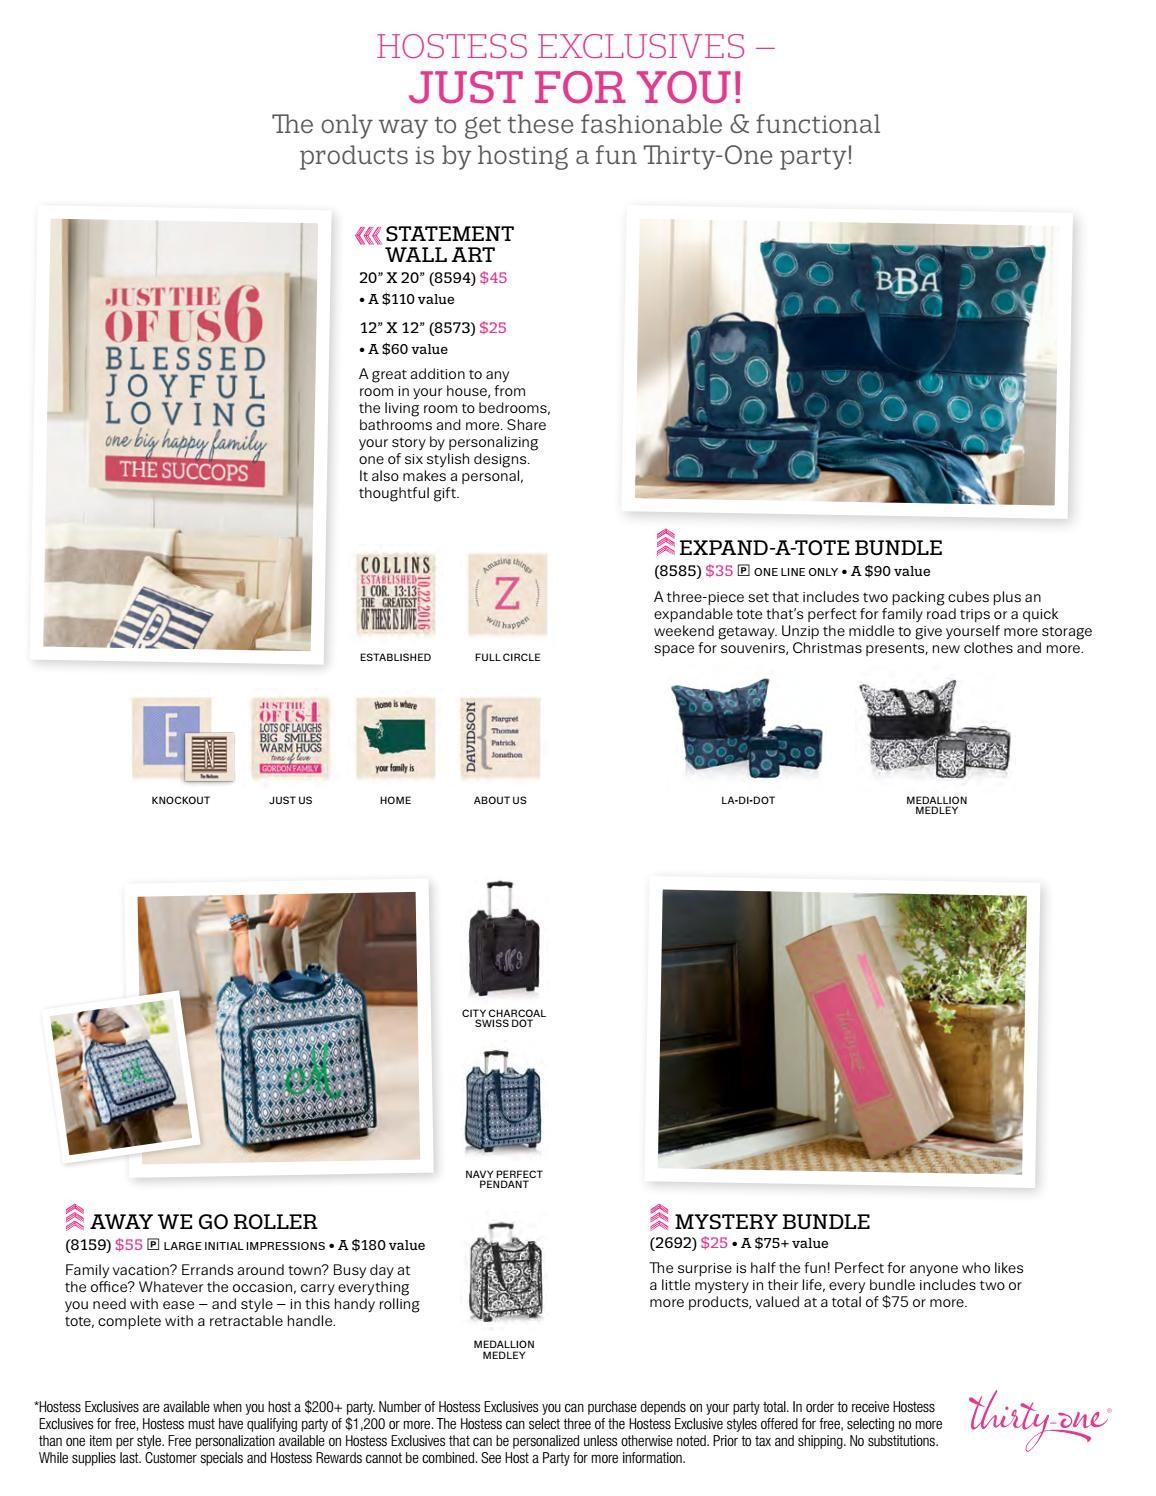 Thirty One Hostess Exclusives Rewards Fall Winter 2016